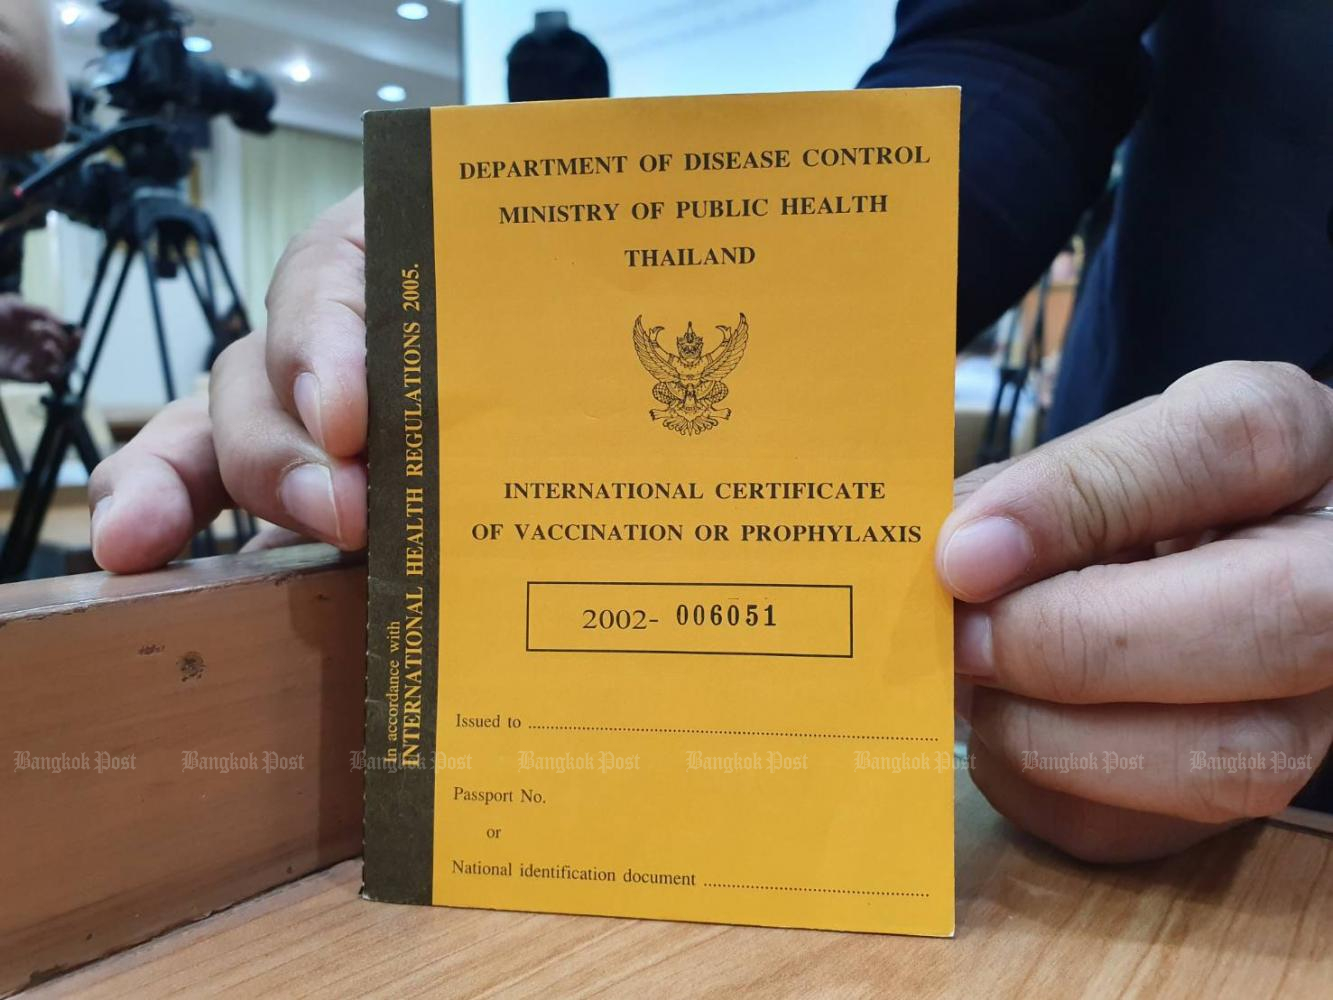 A sample of a Covid-19 vaccine passport. (Photo by The Ministry of Public Health)